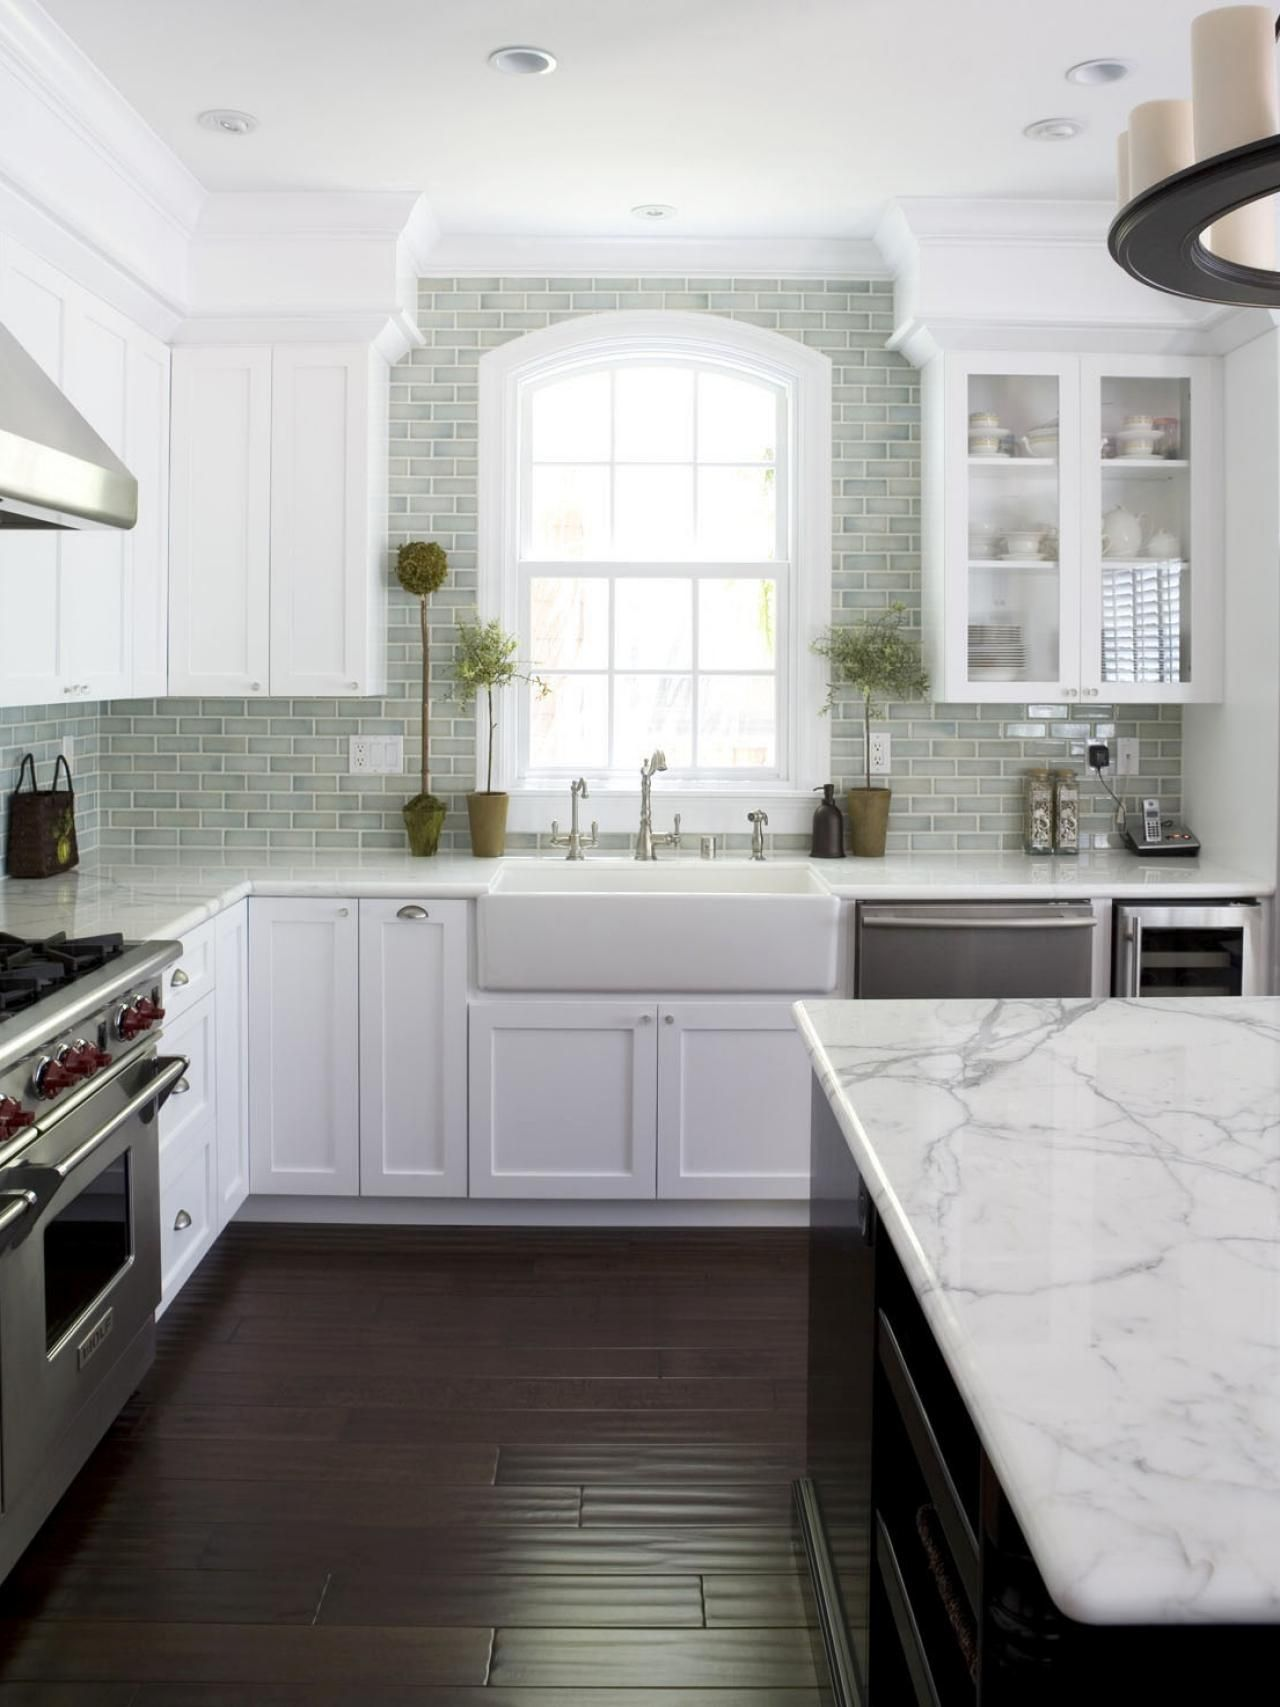 Our 40 favorite white kitchens kitchen ideas design with cabinets islands backsplashes hgtv